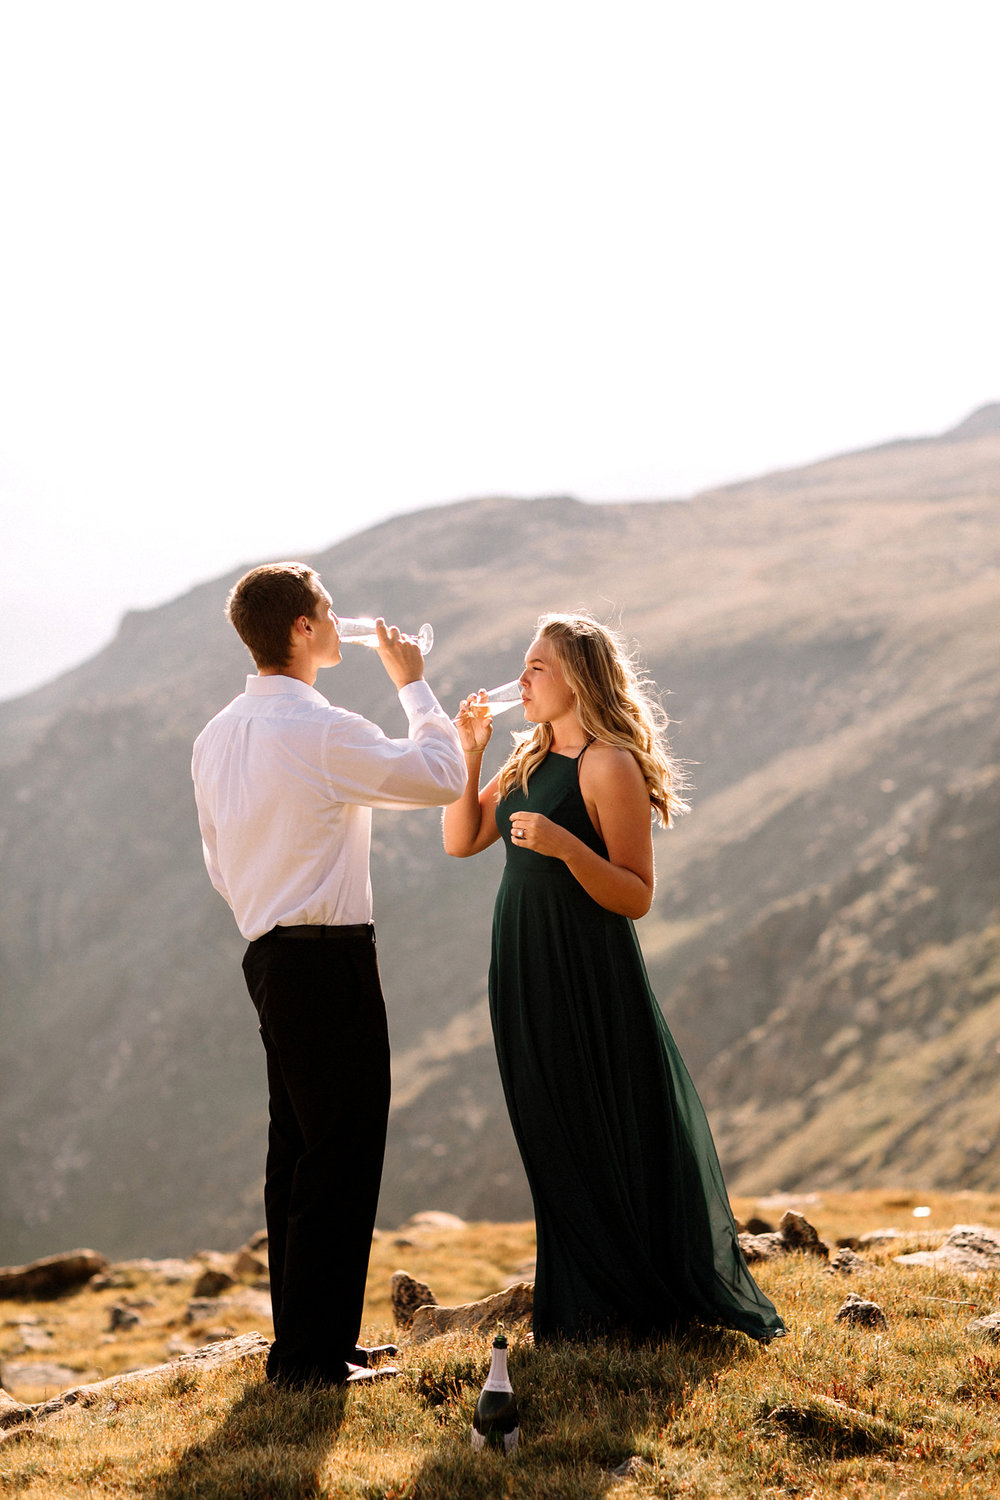 Rocky Mountain Engagement National Park Engaged Photos Wedding Elopement Portrait Mountains Trail Ridge Rd Peak Alpine Dress Lulus Rules Permit Photo Adventure Love Couples Destination Liz Osban photography Cheyenne Wyoming4.jpg